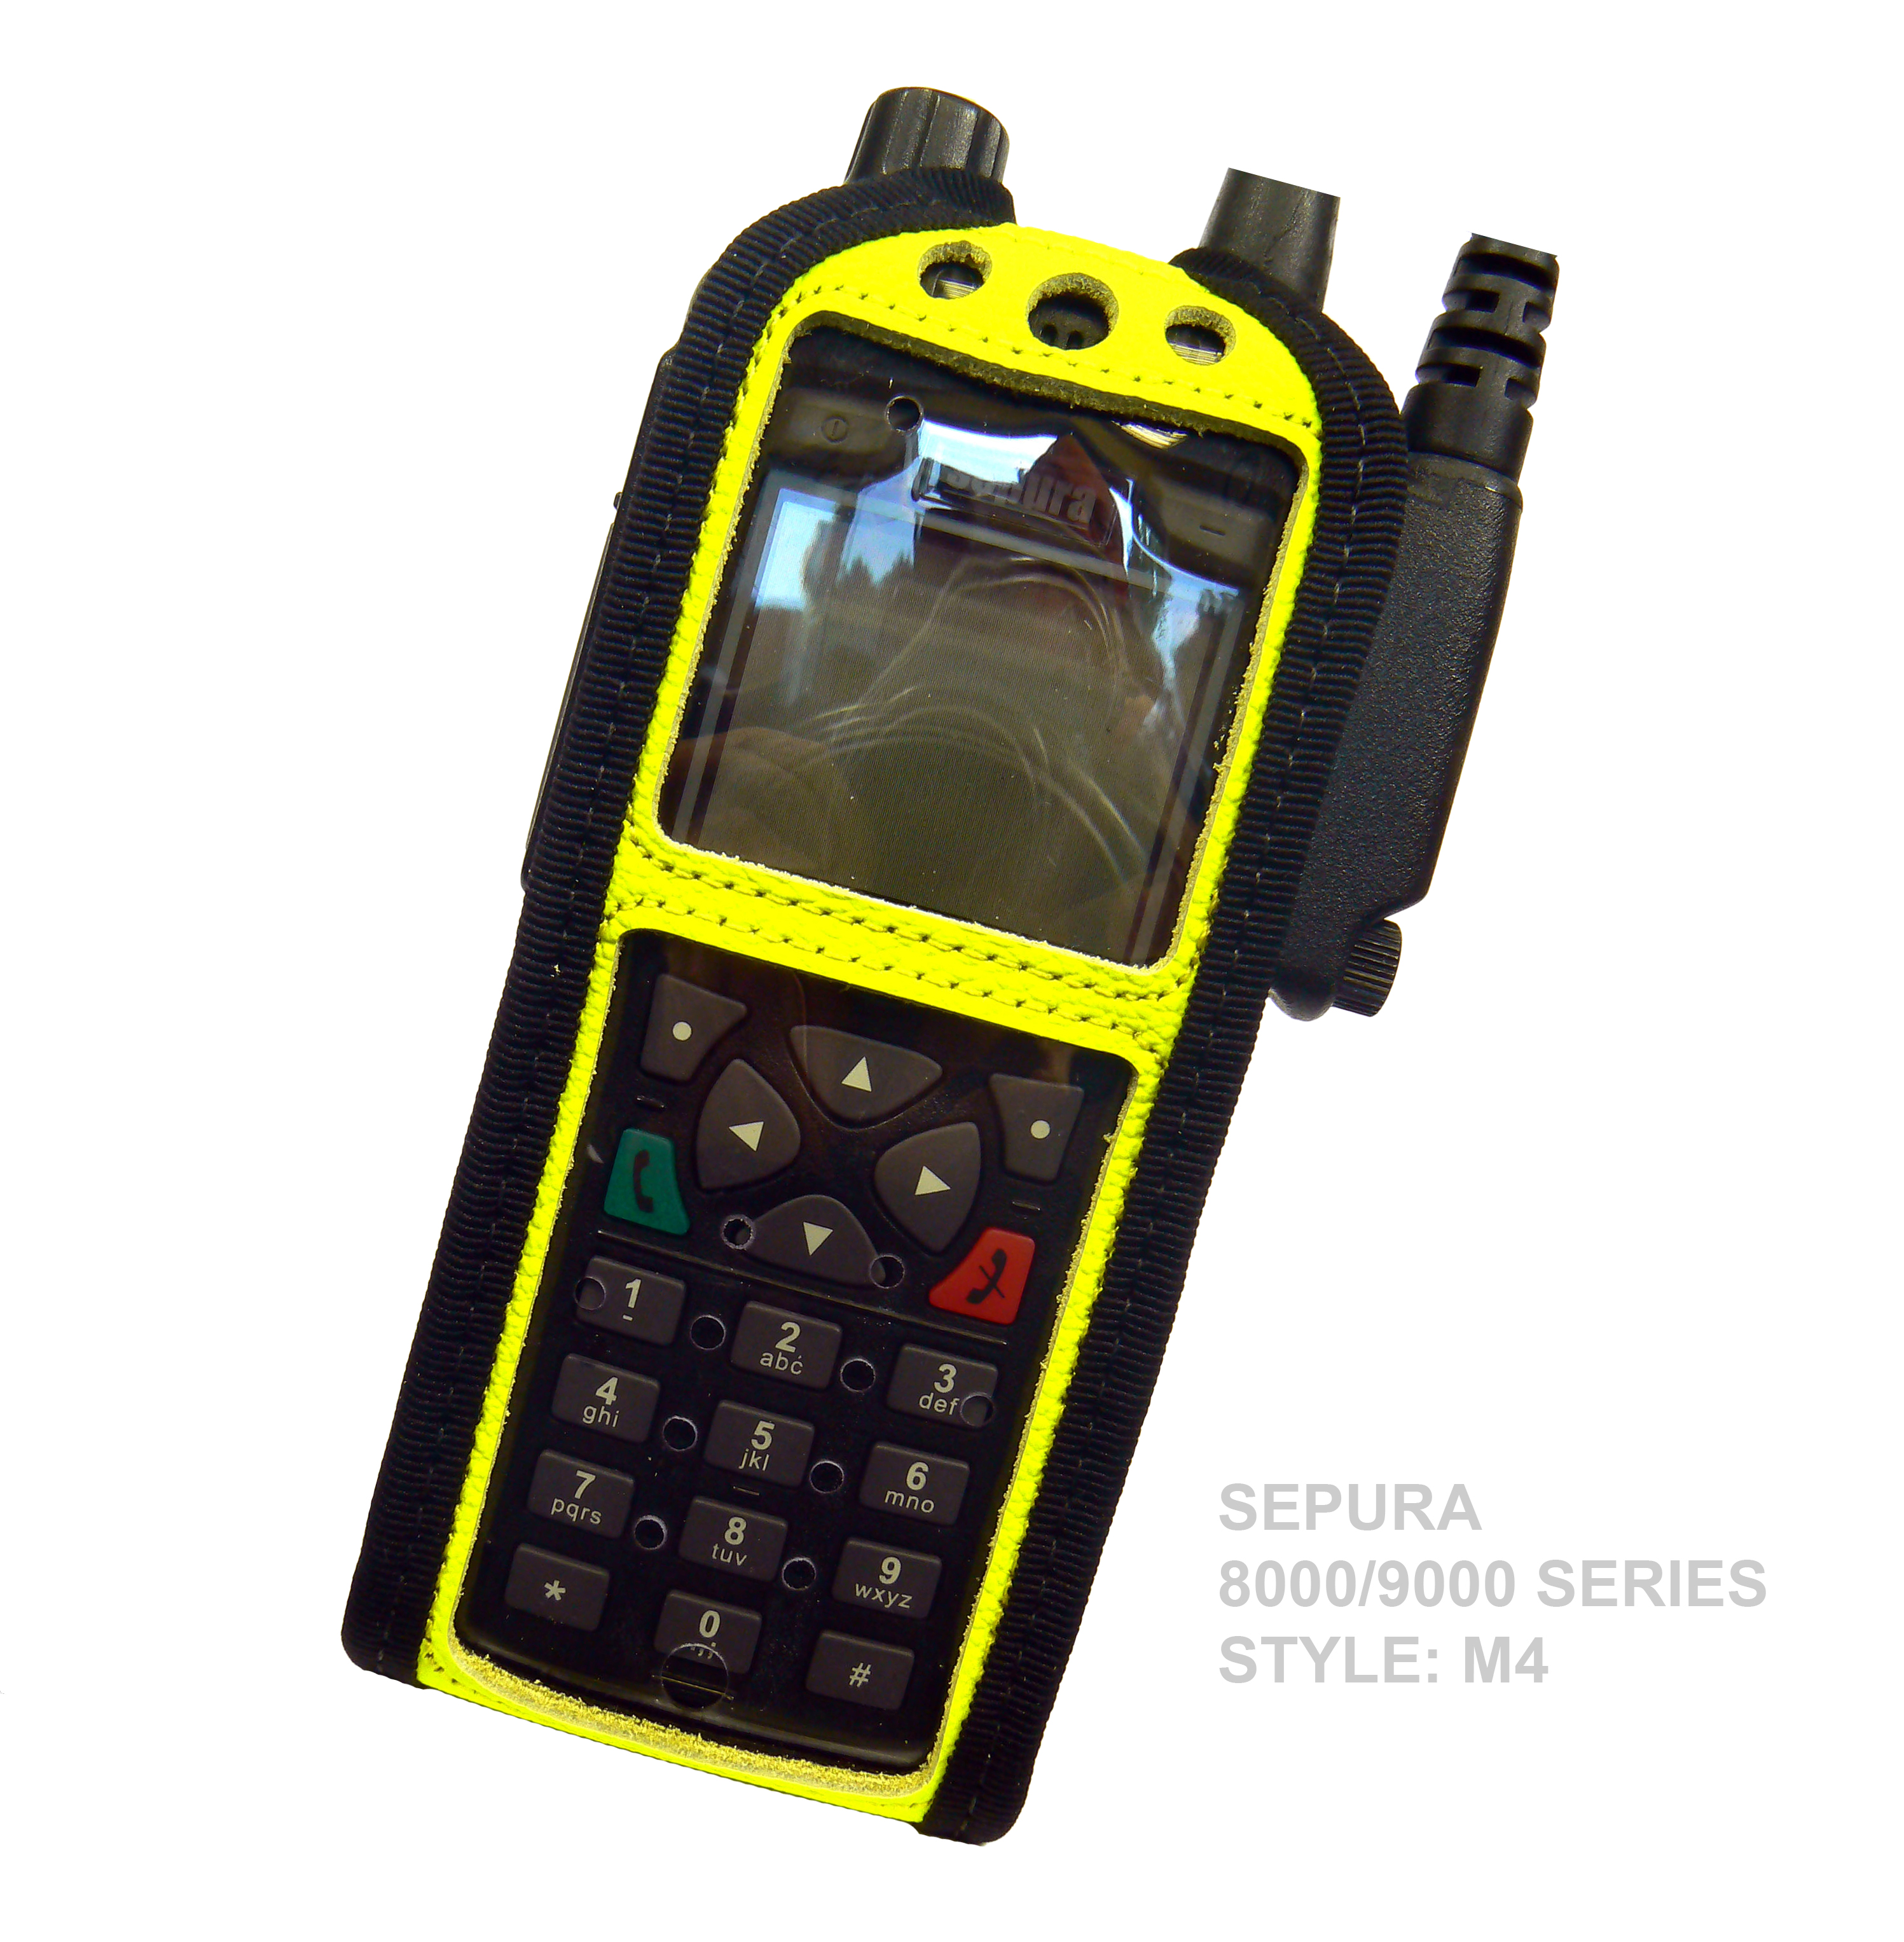 Tetra Sepura STP8000 Hi-Vis Yellow leather radio case with Click-On